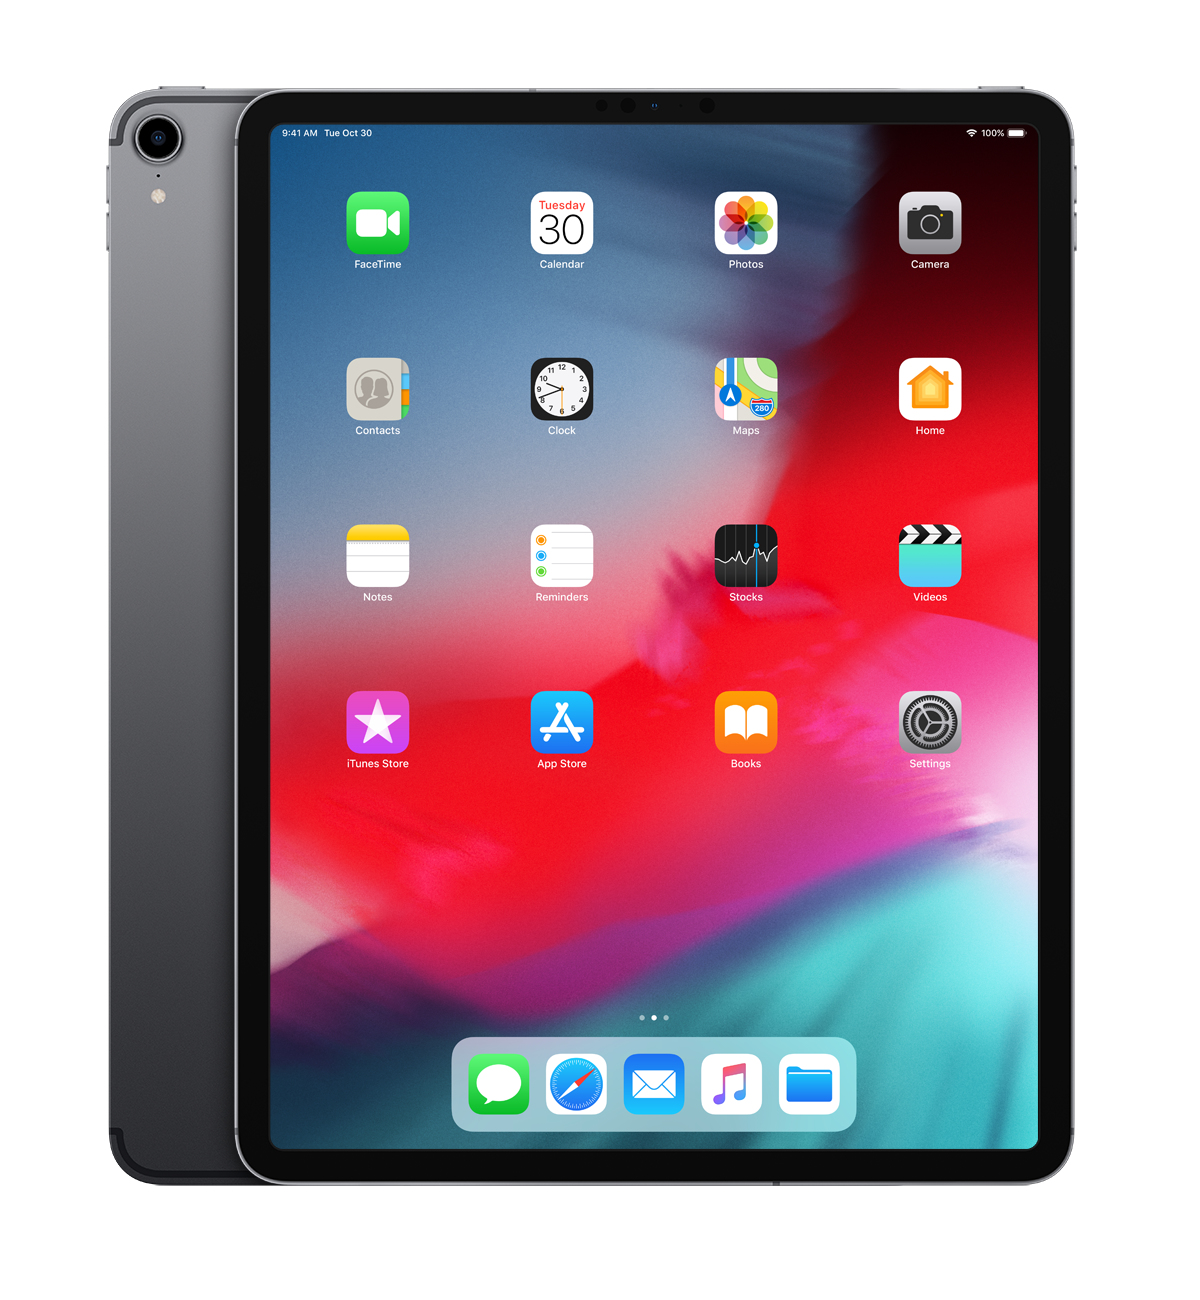 iPad Pro 2018 - 12.9in - Wi-Fi + Cellular - 256GB - Space Gray